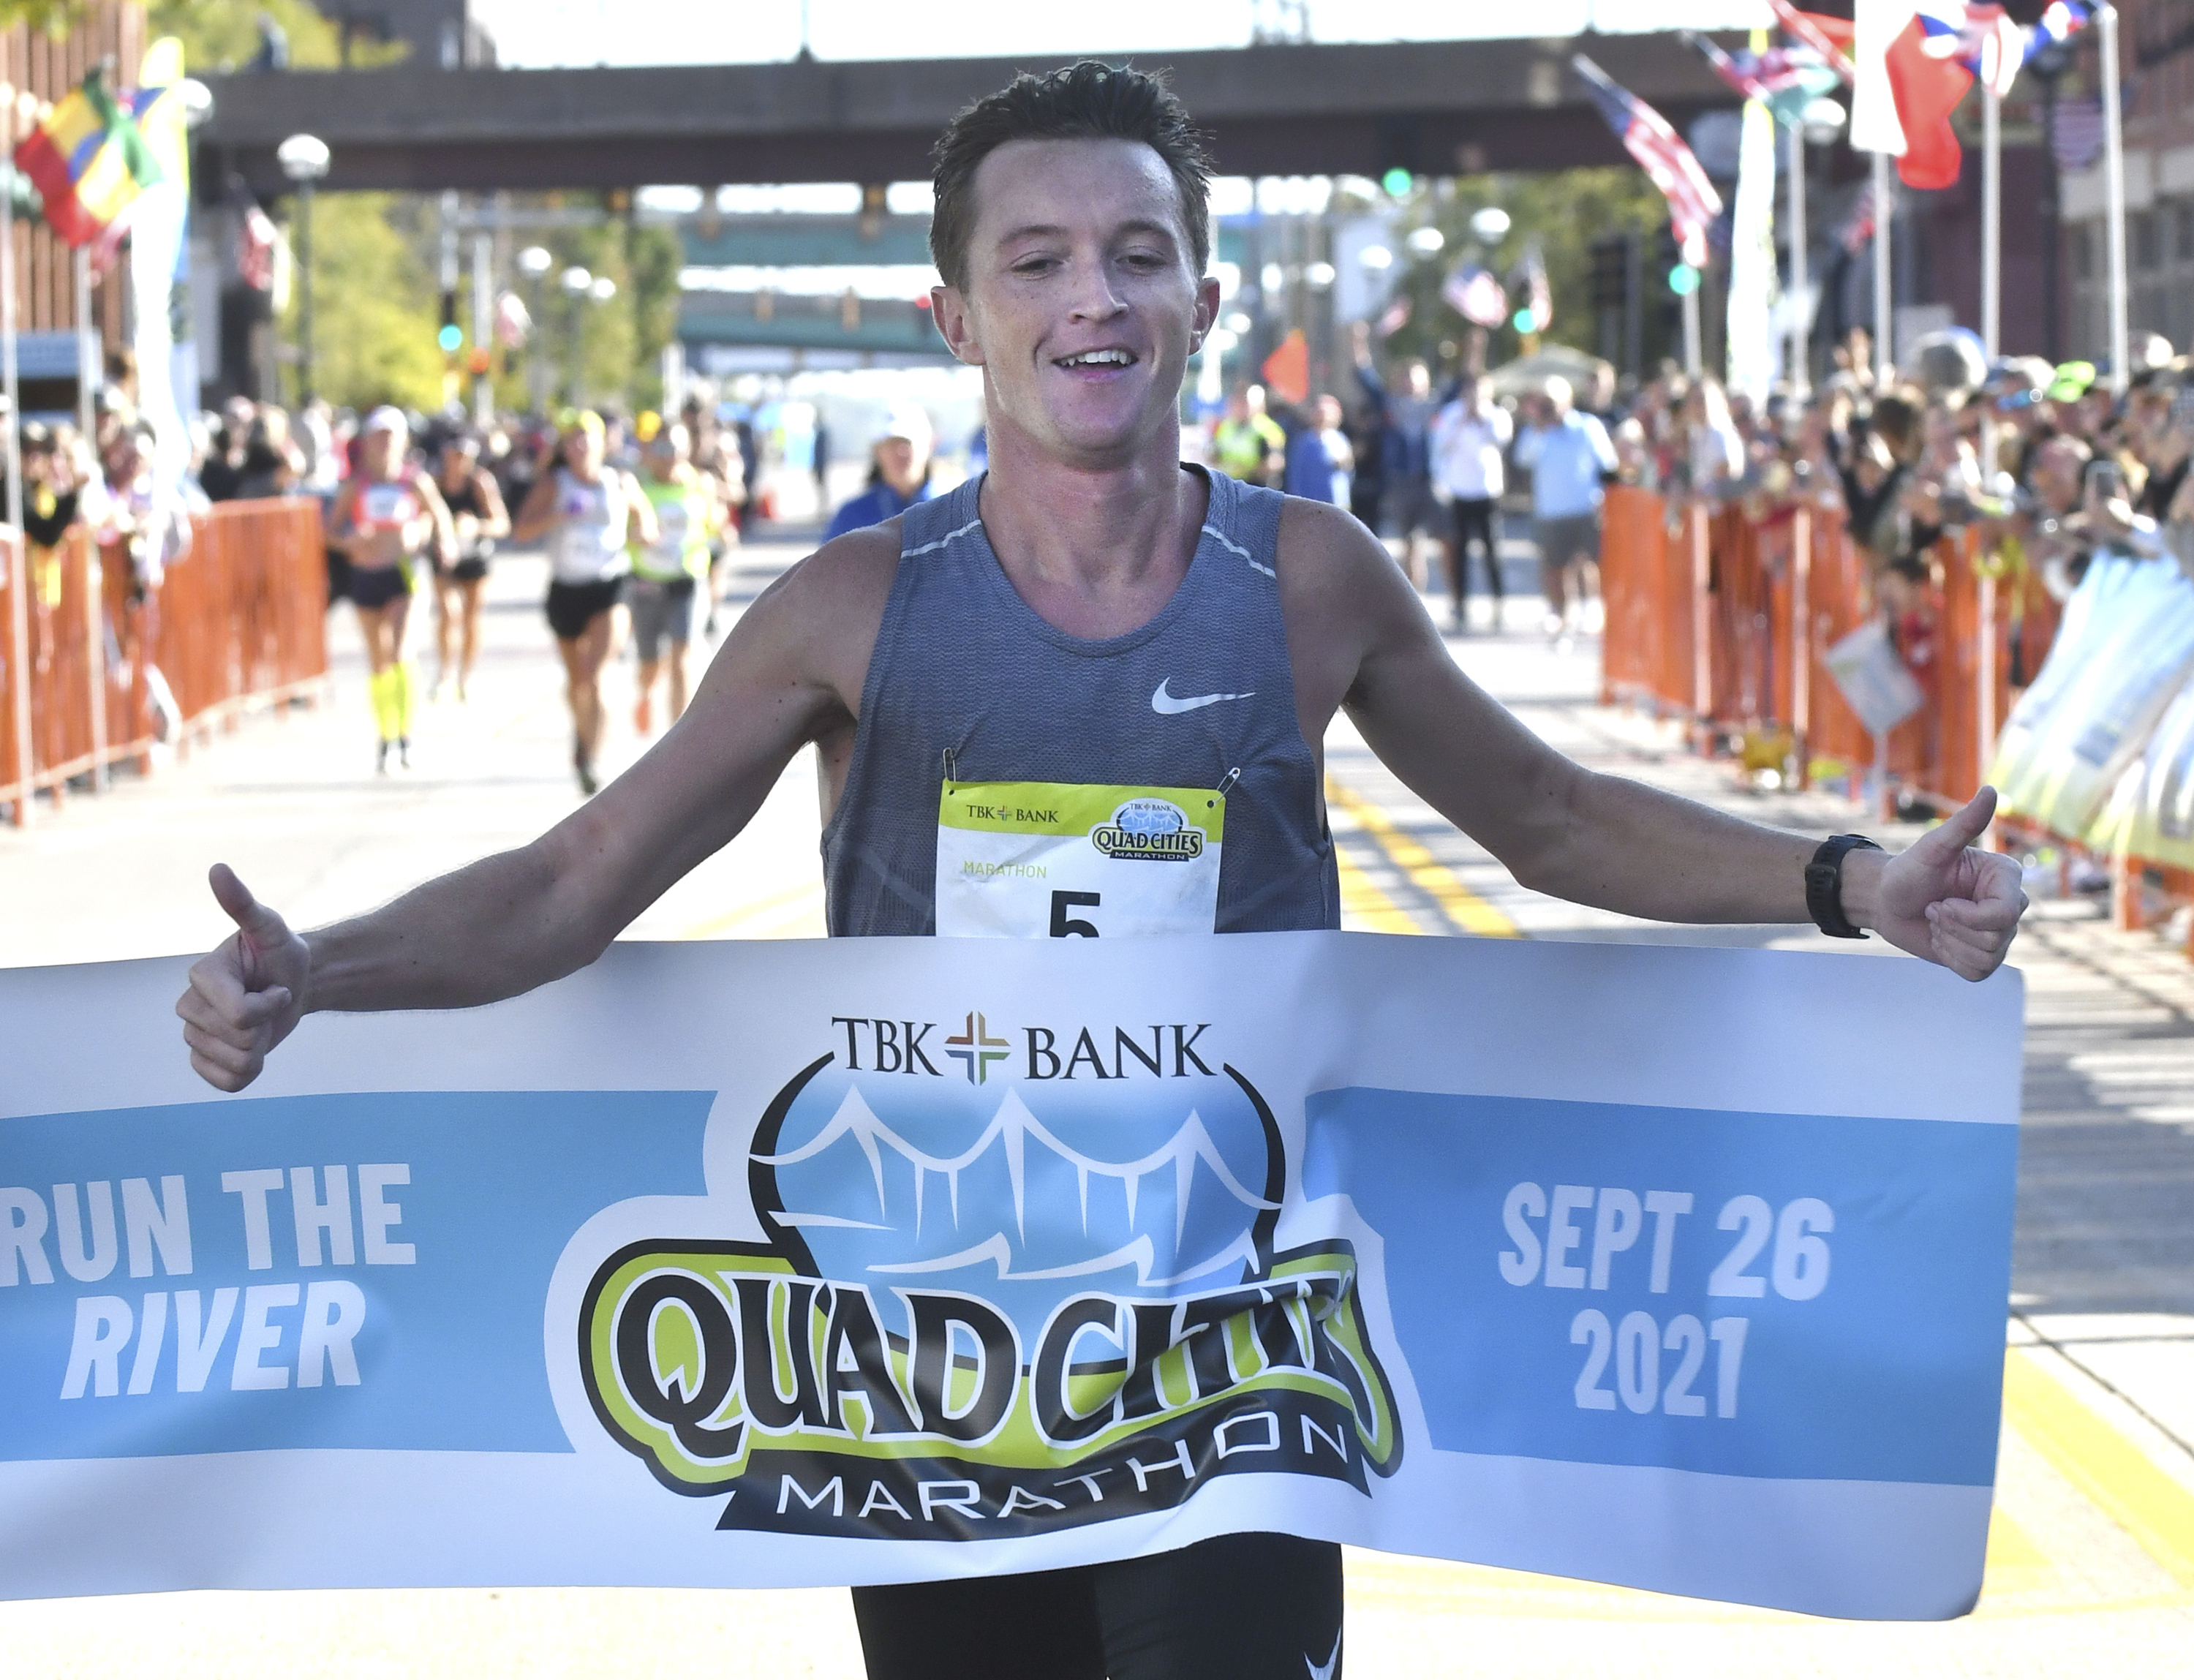 Tyler Pence of Springfield finishes first in the TBK Bank Quad Cities Marathon on Sept. 26, 2021, in Moline, Ill.